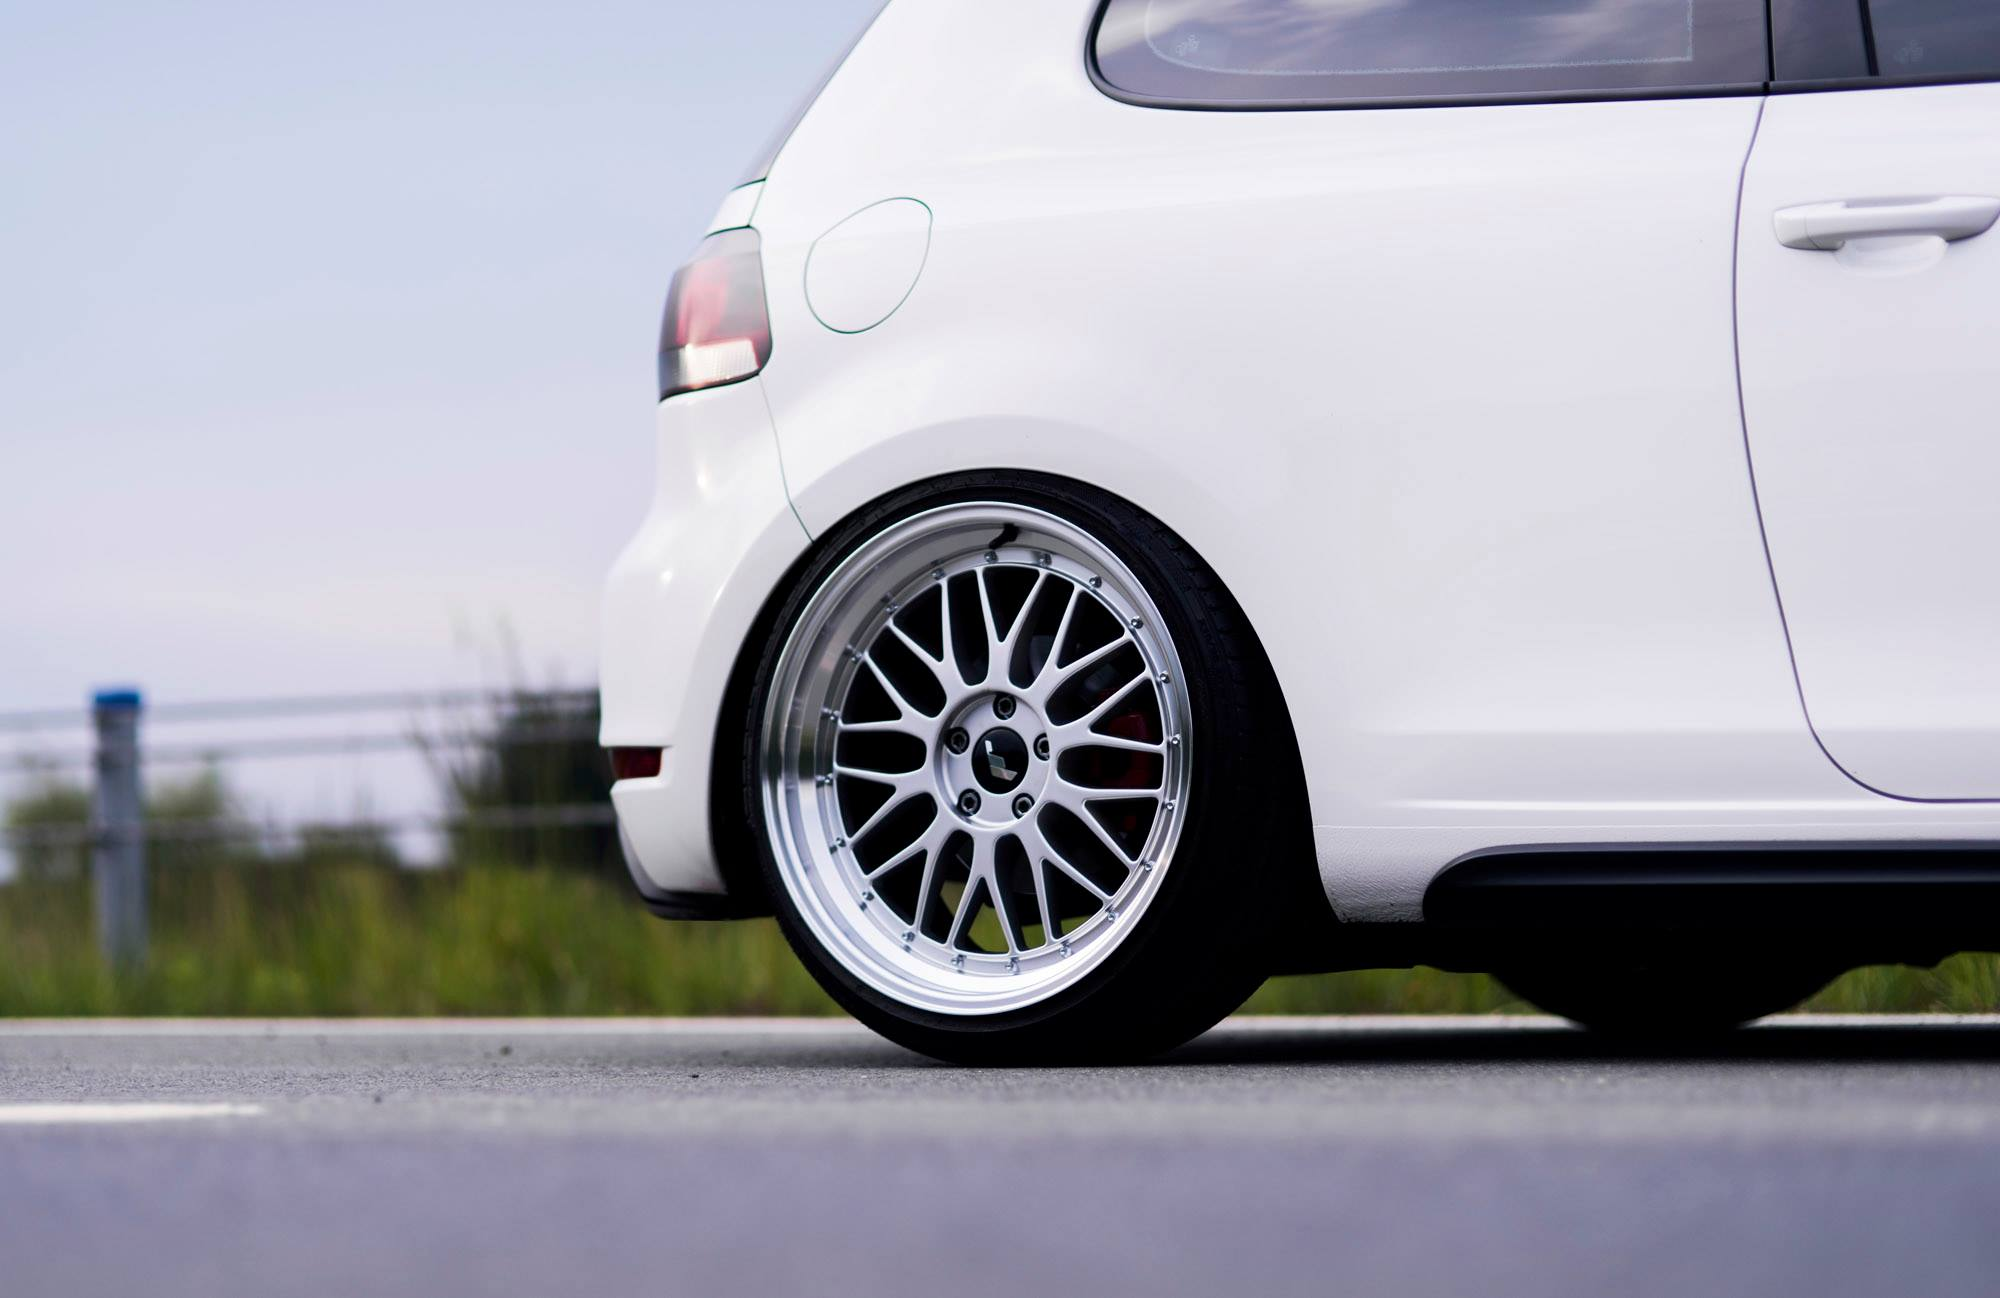 Bmw Bolt Pattern >> JR WHEELS JR-23 18″ | JDMDistro - Buy JDM Parts Online ...